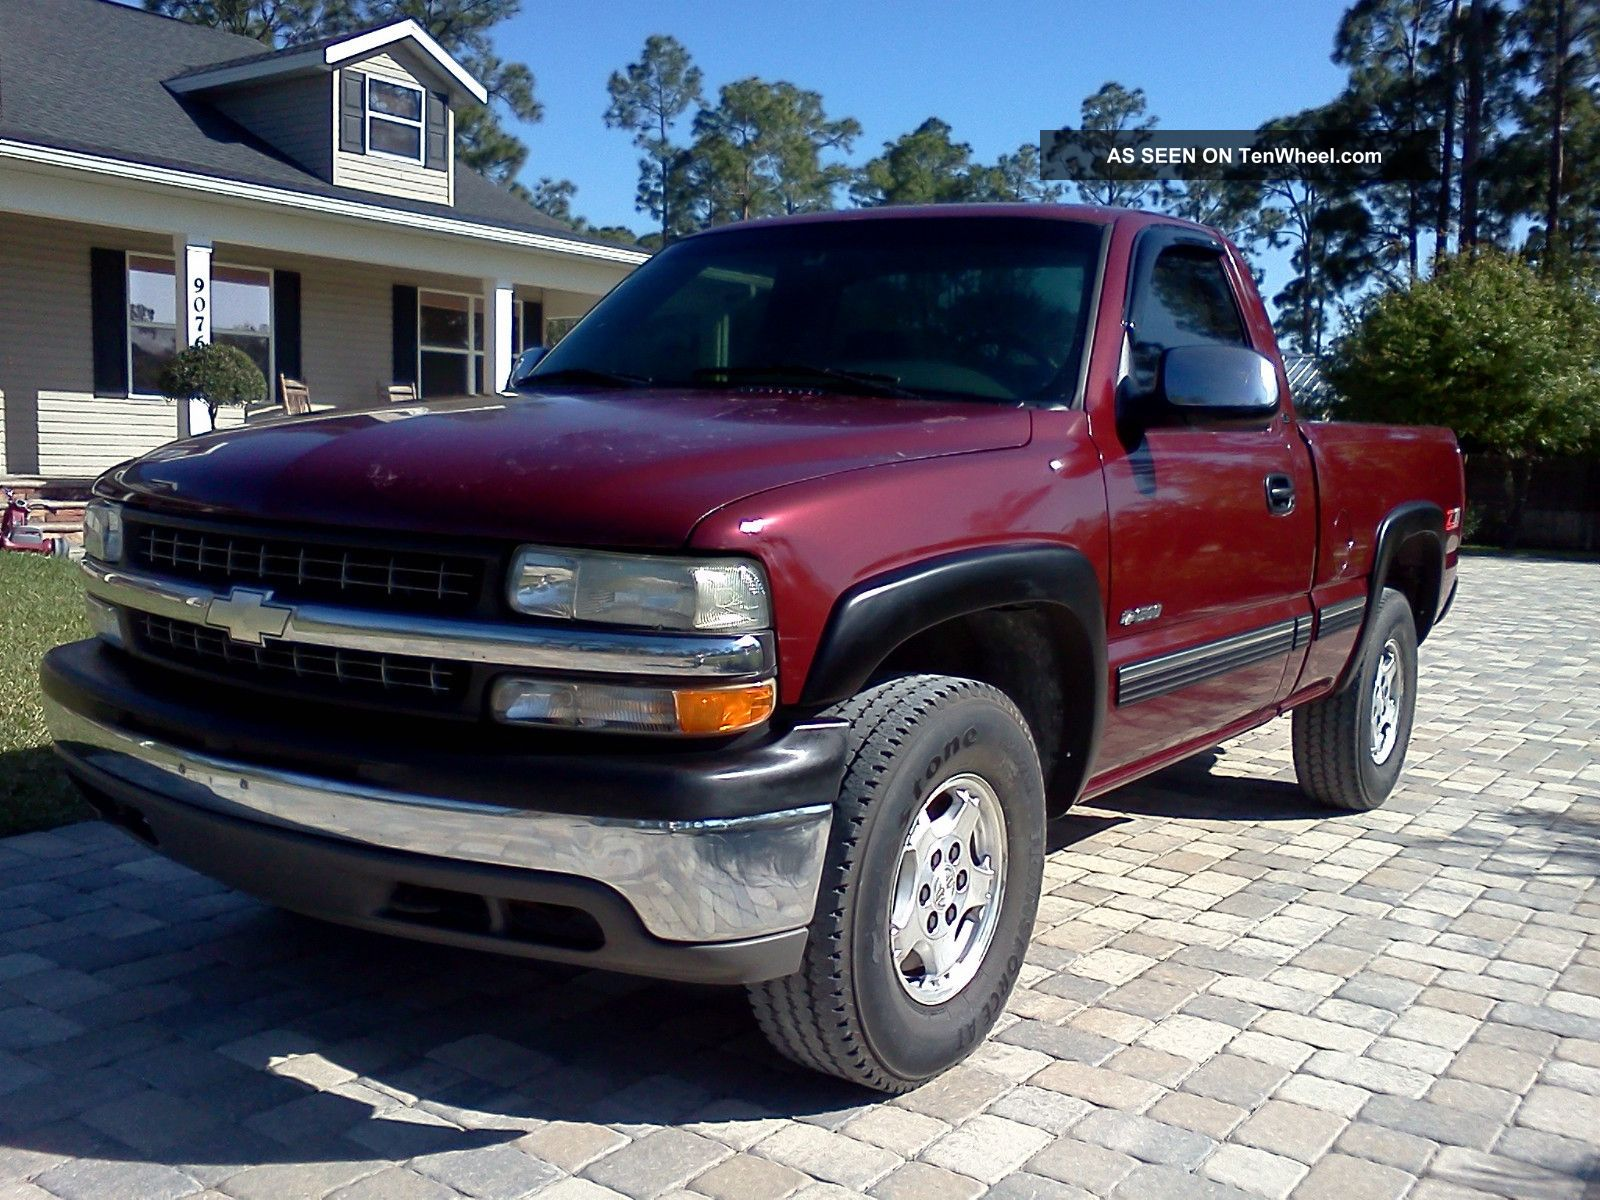 prevnext drive first front silverado chevrolet sale view reviews truck for reaper